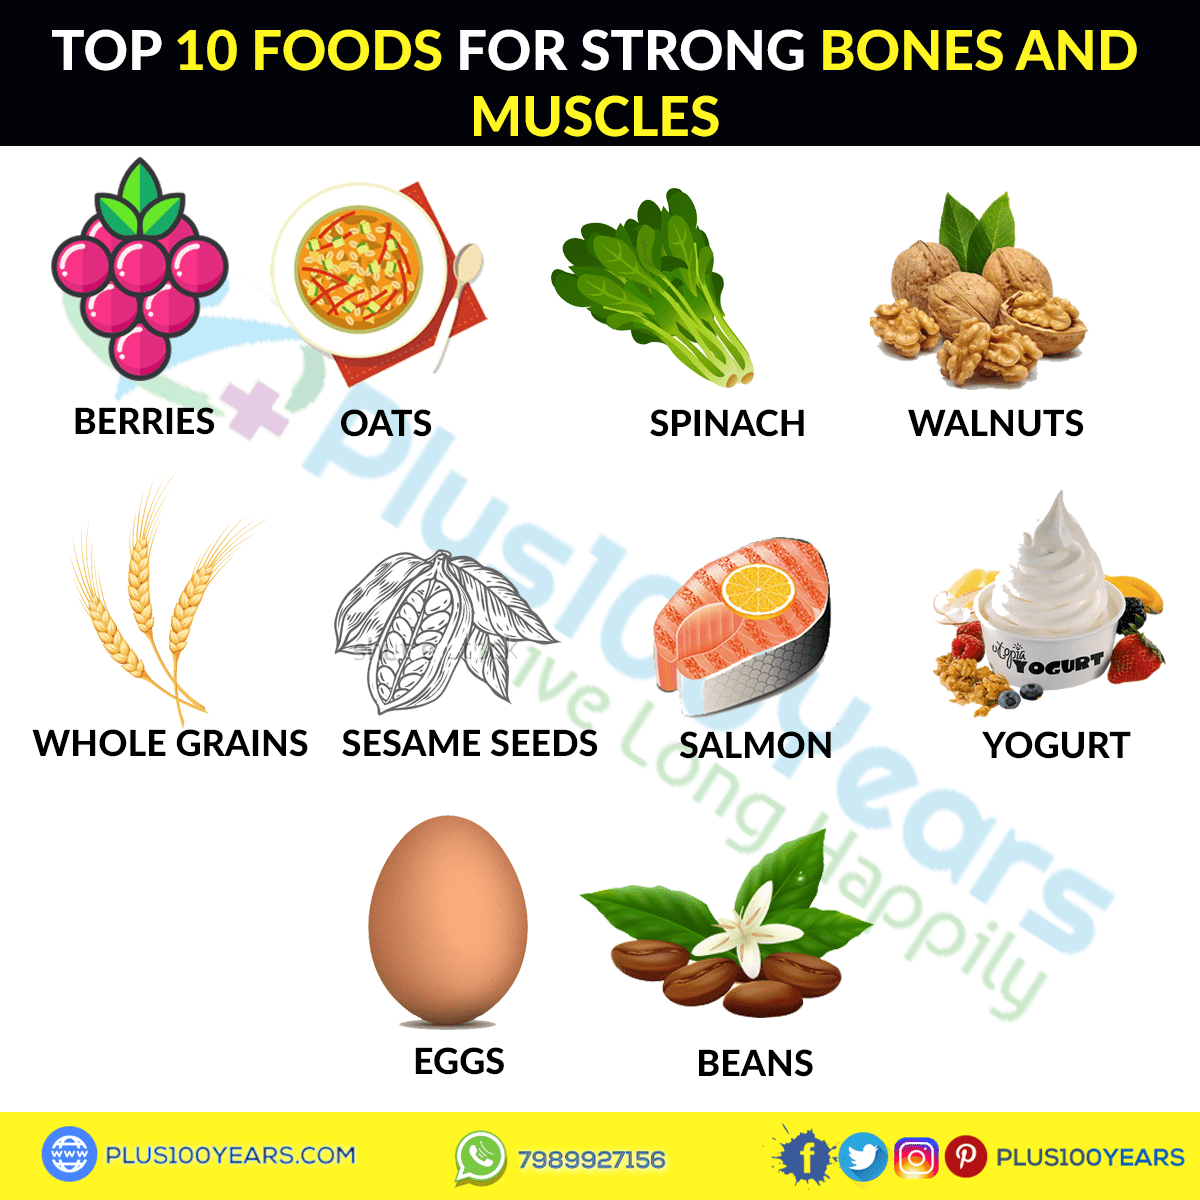 Foods for strong bones and muscles